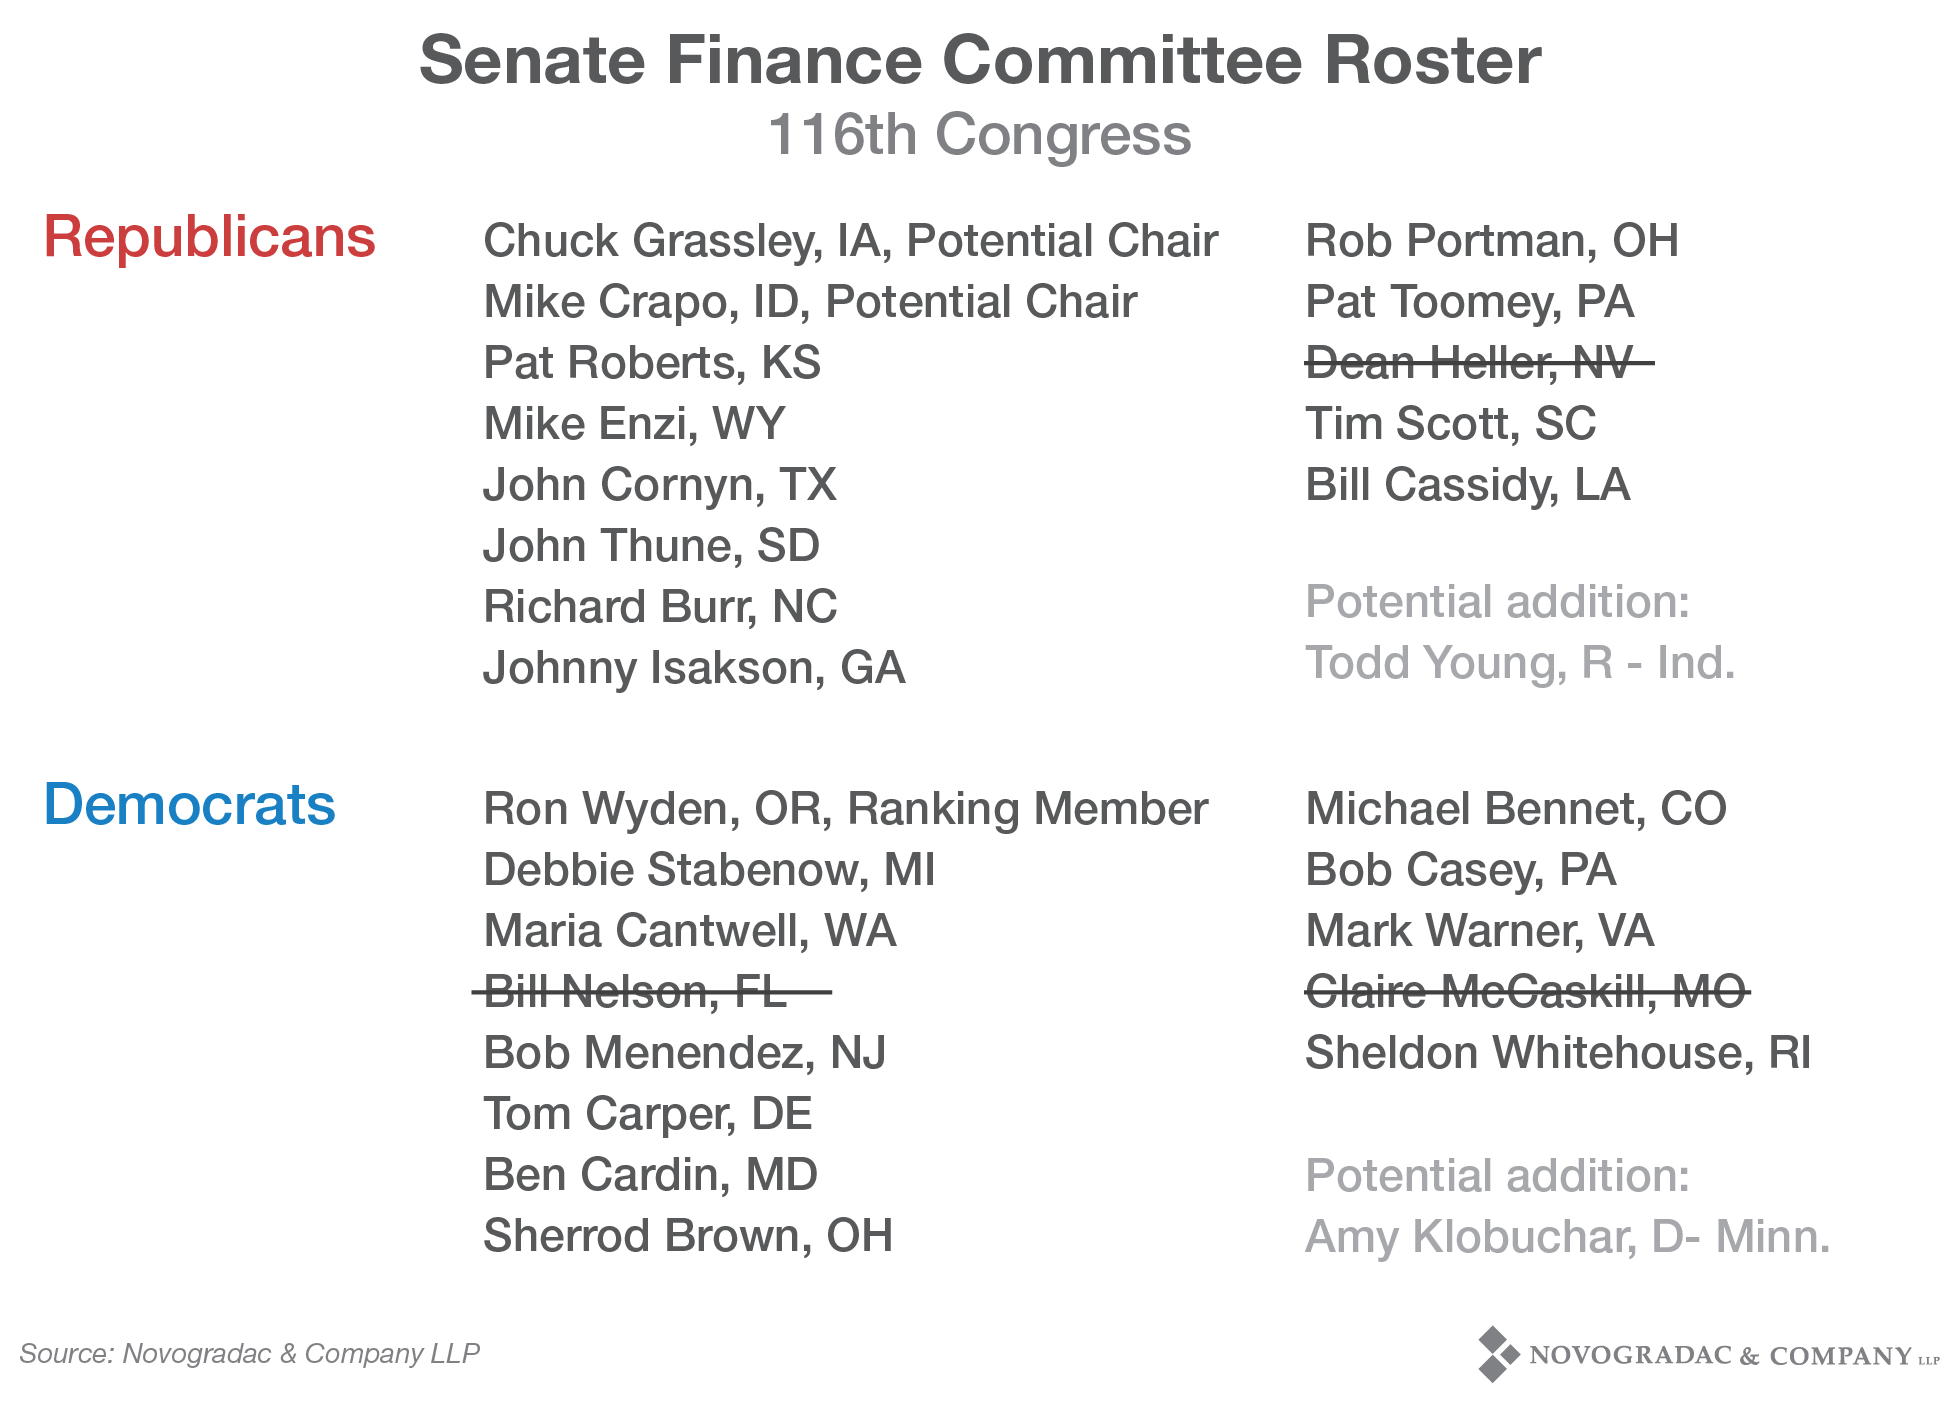 Blog Image 2018 Election Senate Finance Committee Roster